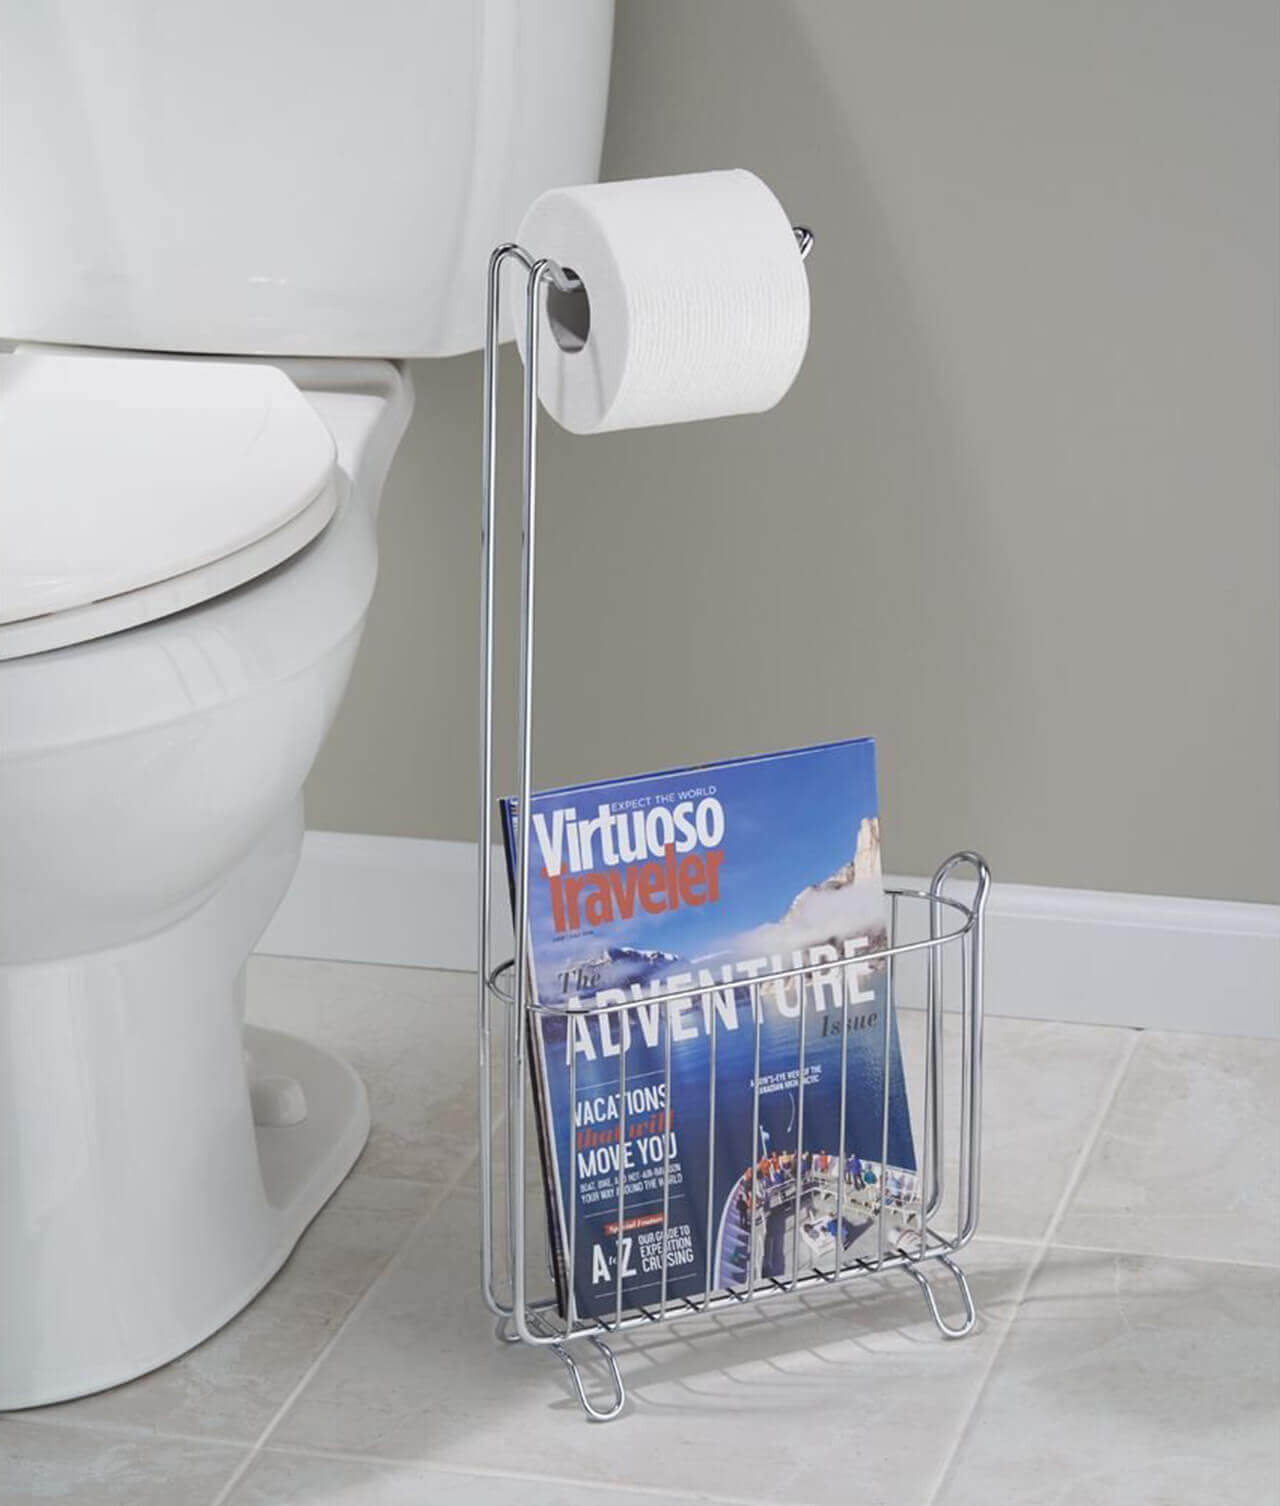 a-bathroom-magazine-rack-that-sits-on-the-floor